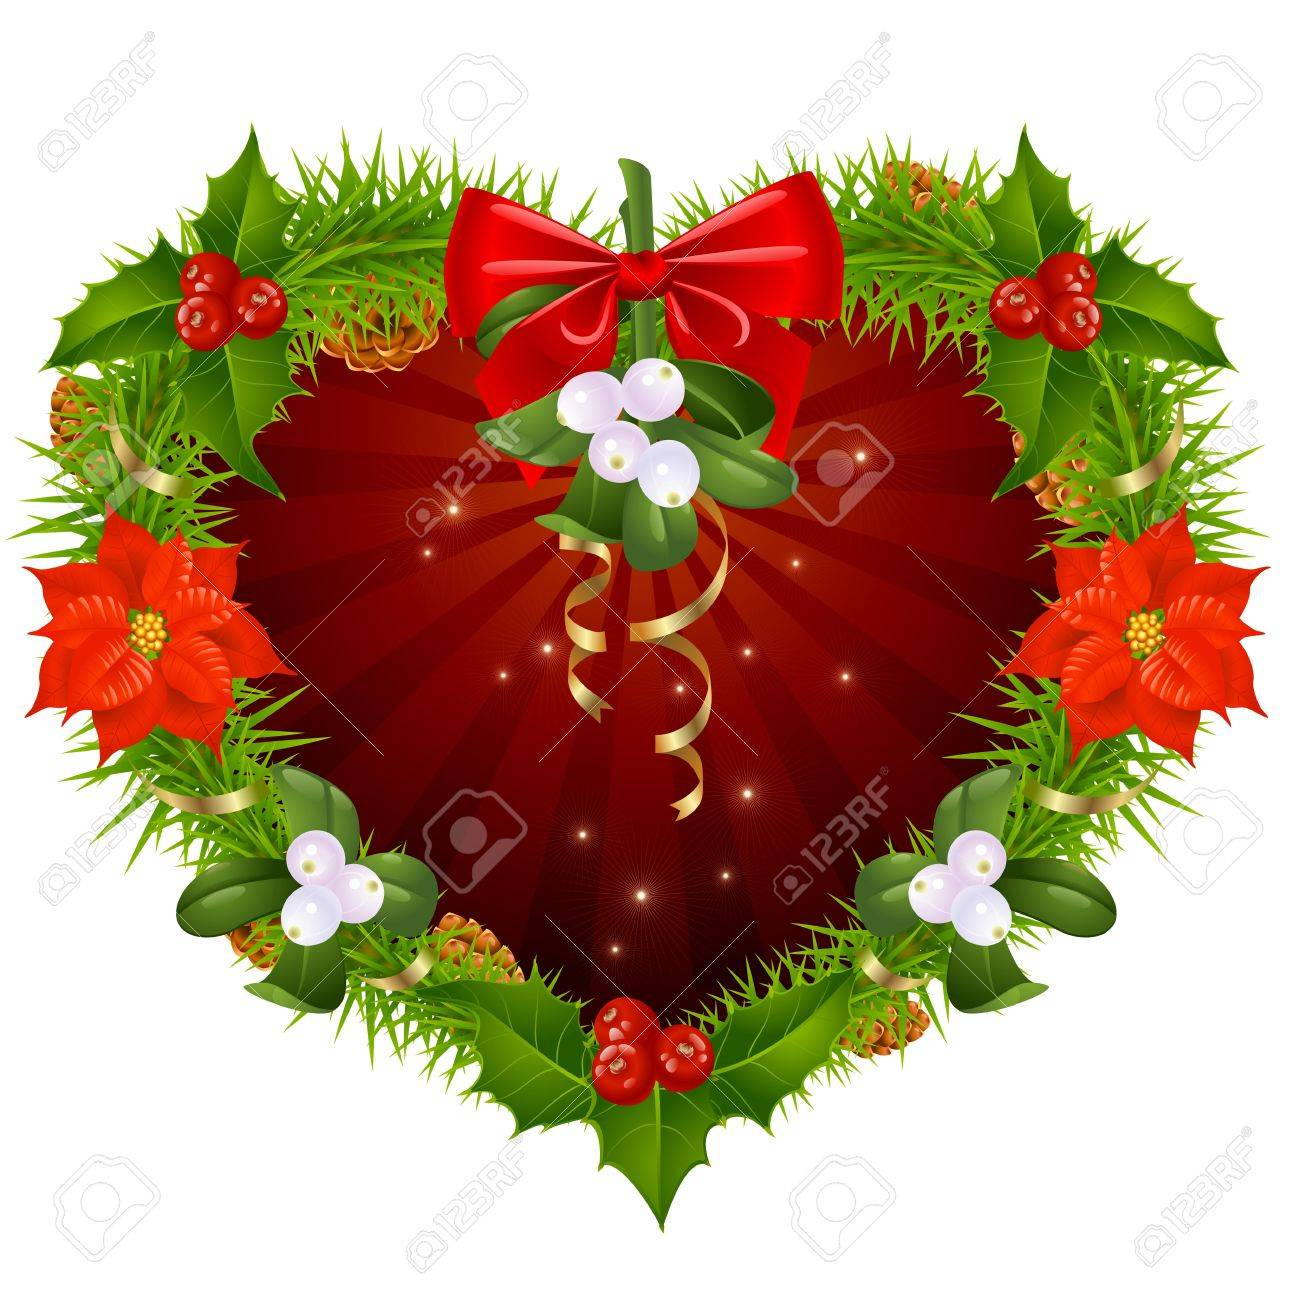 Christmas wreath in the shape of heart Stock Vector - 11222507